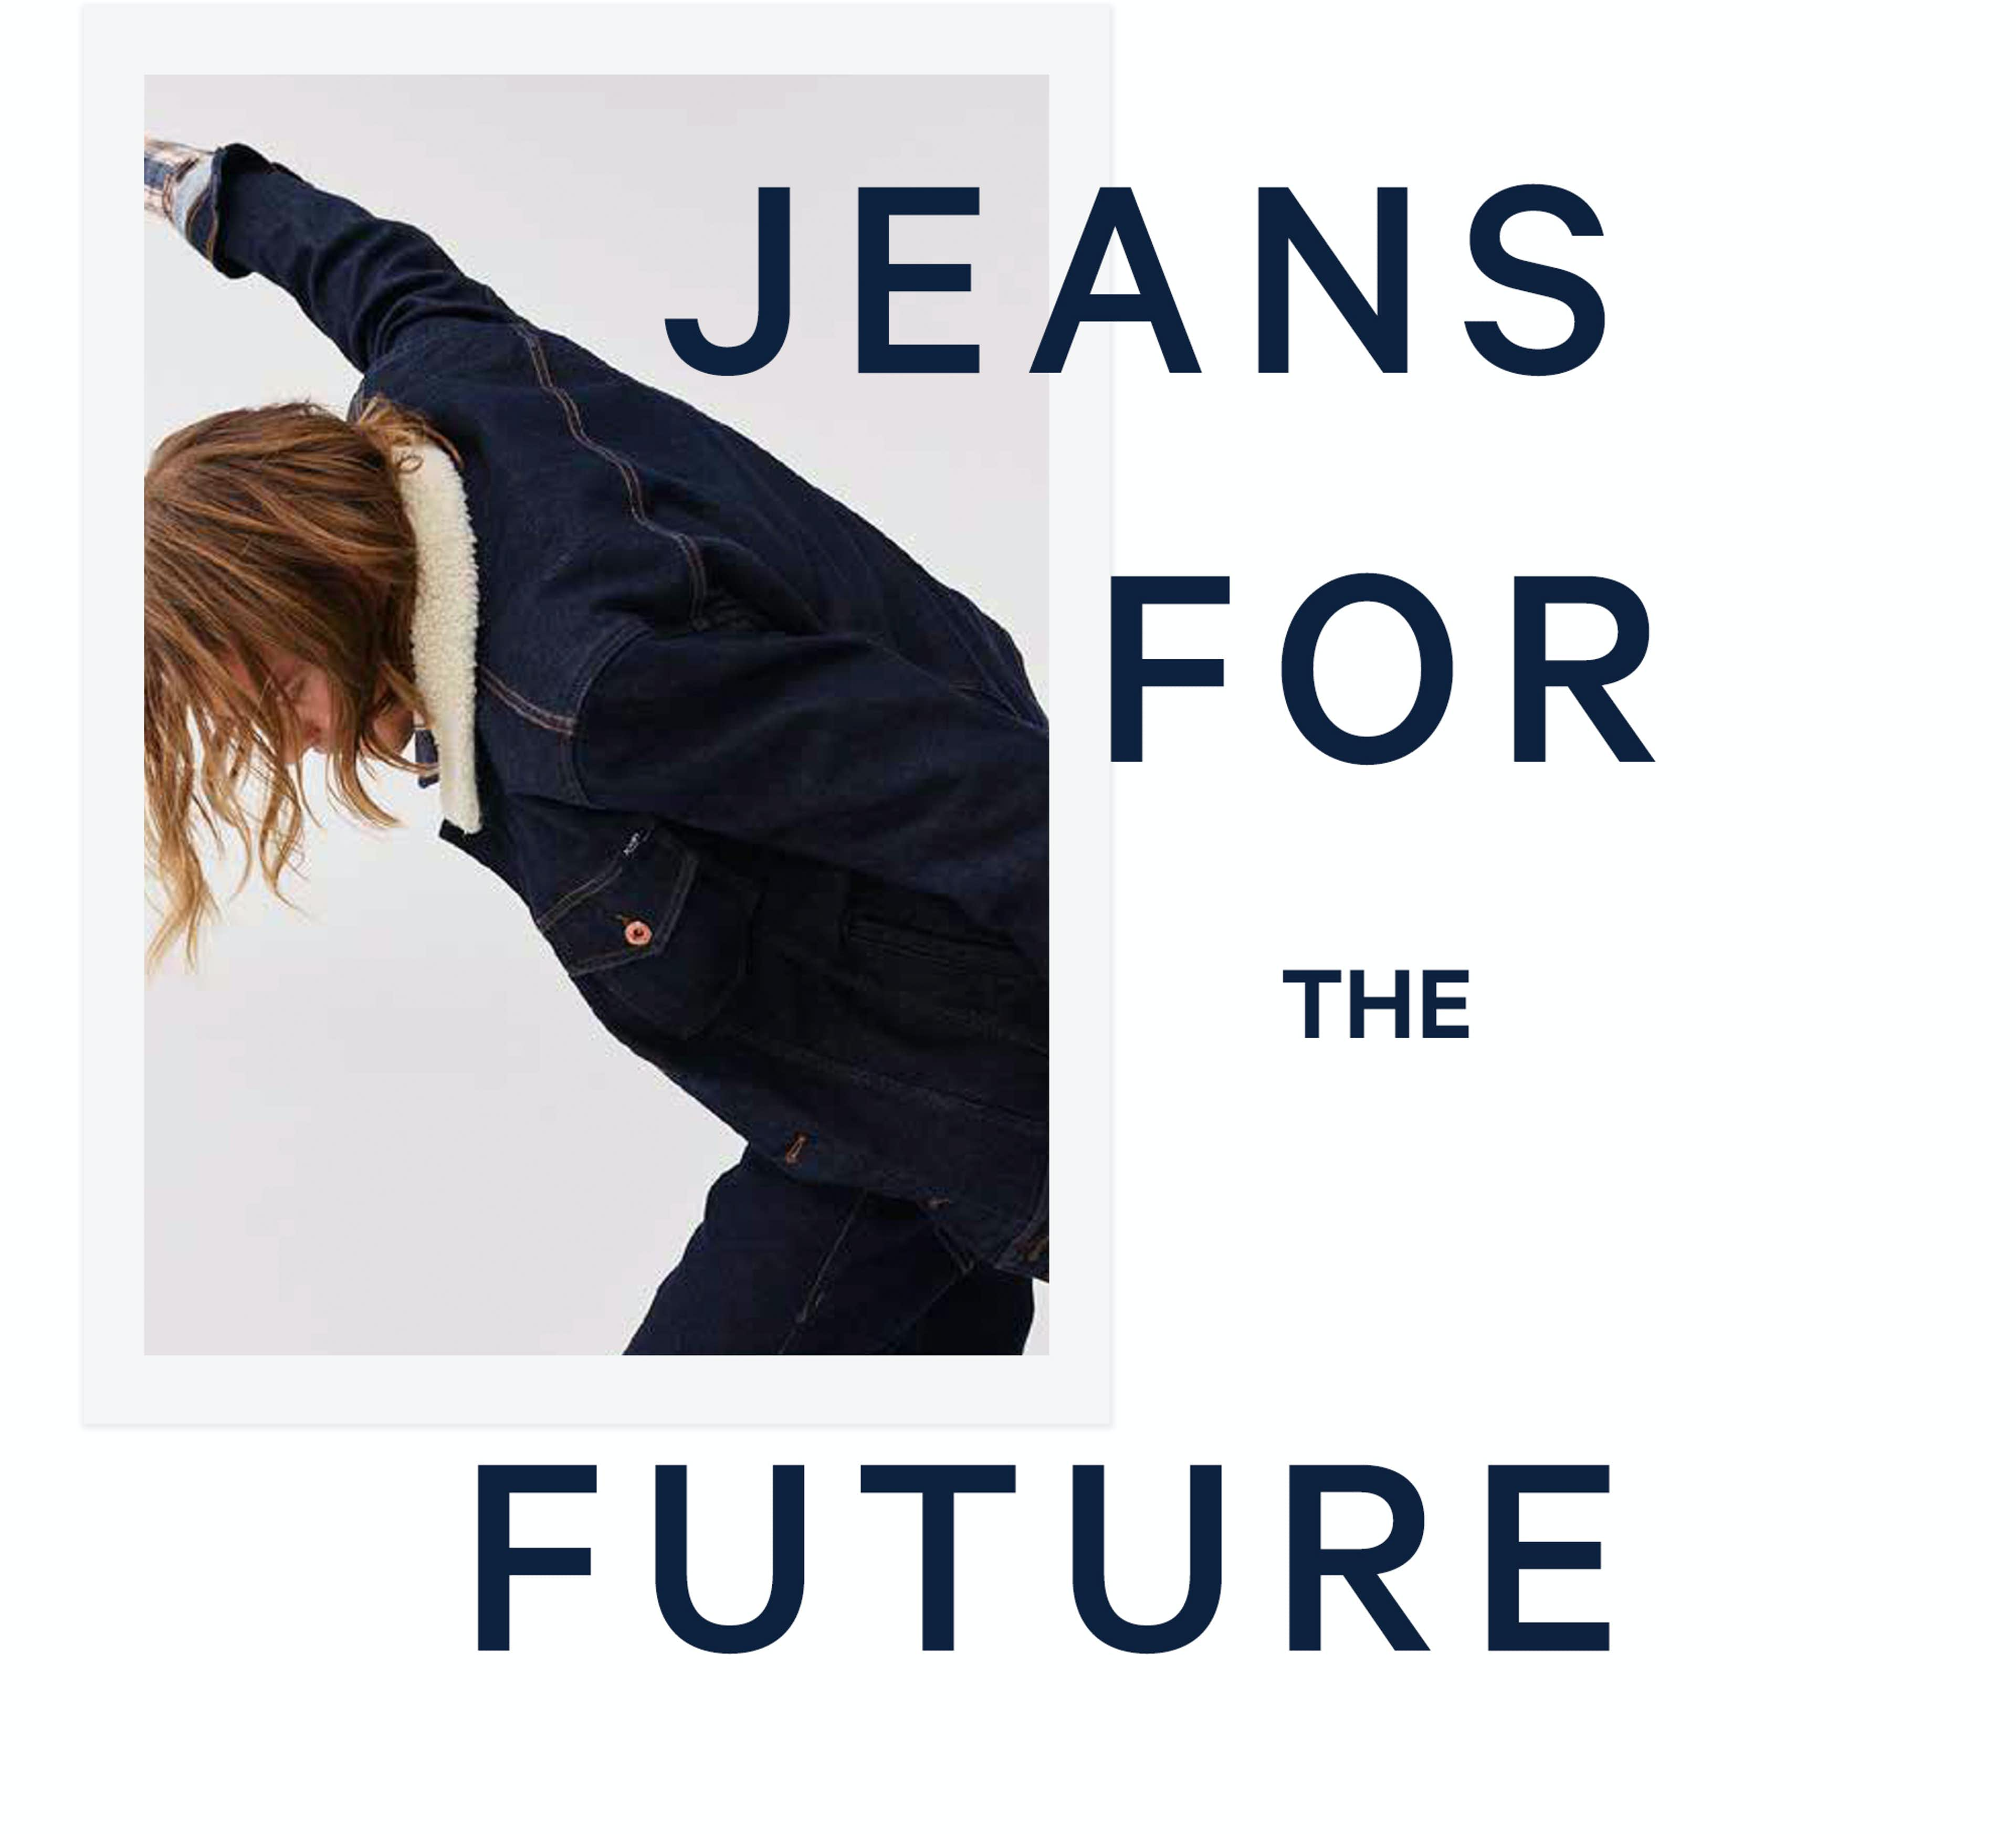 Jeans for the Future